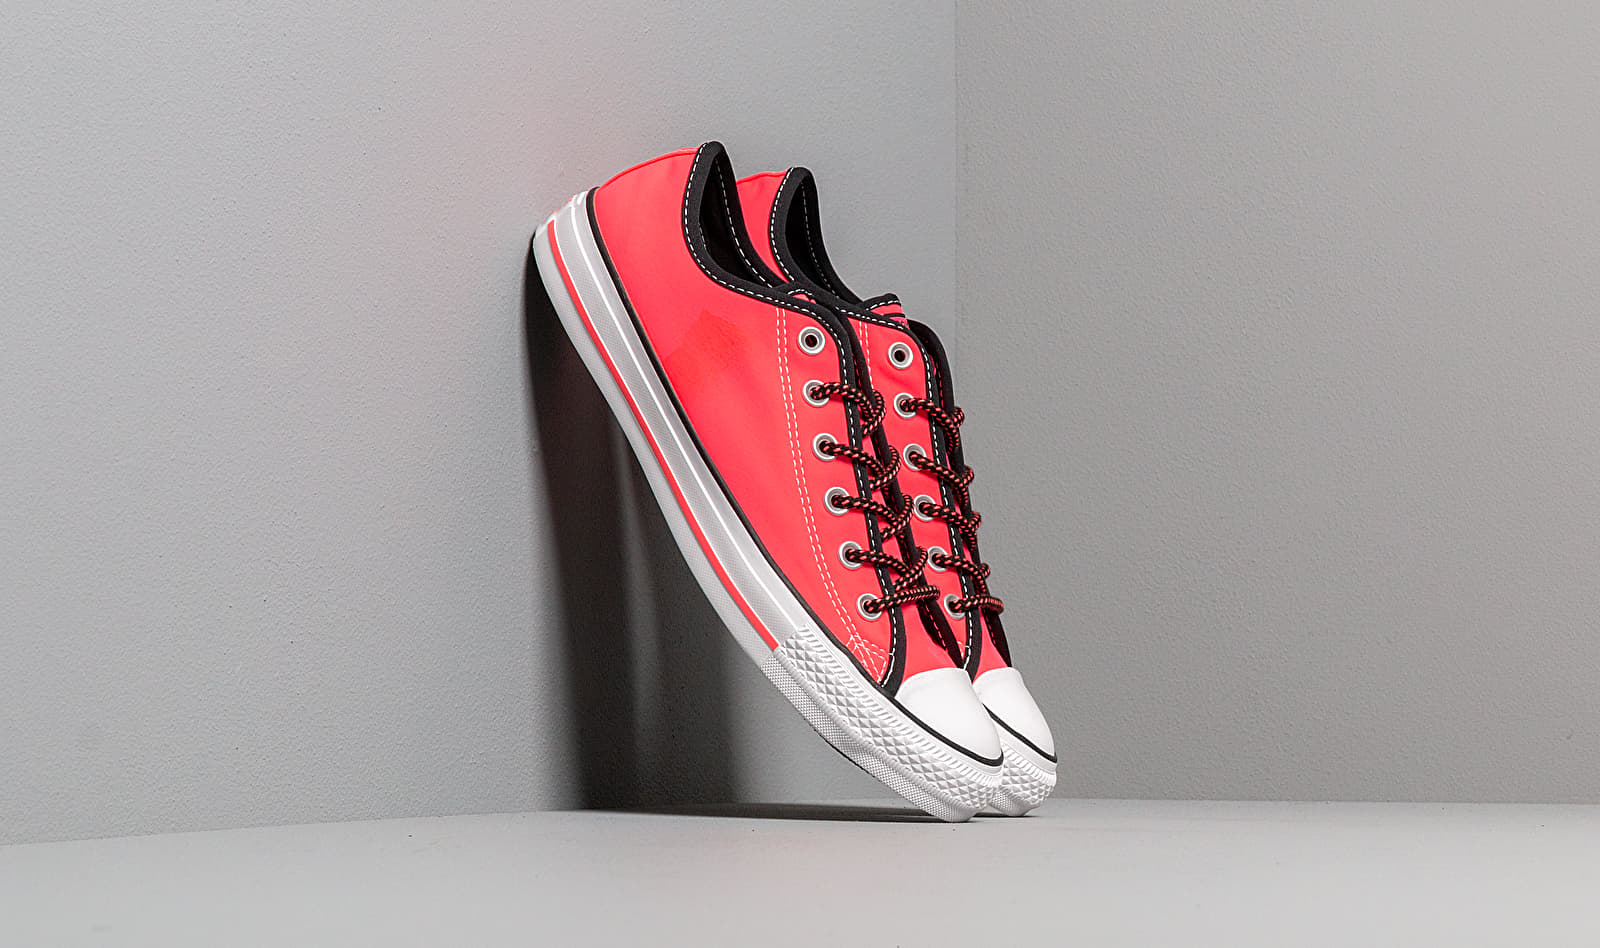 Converse Chuck Taylor All Star Racer Pink/ Black/ White 164094C